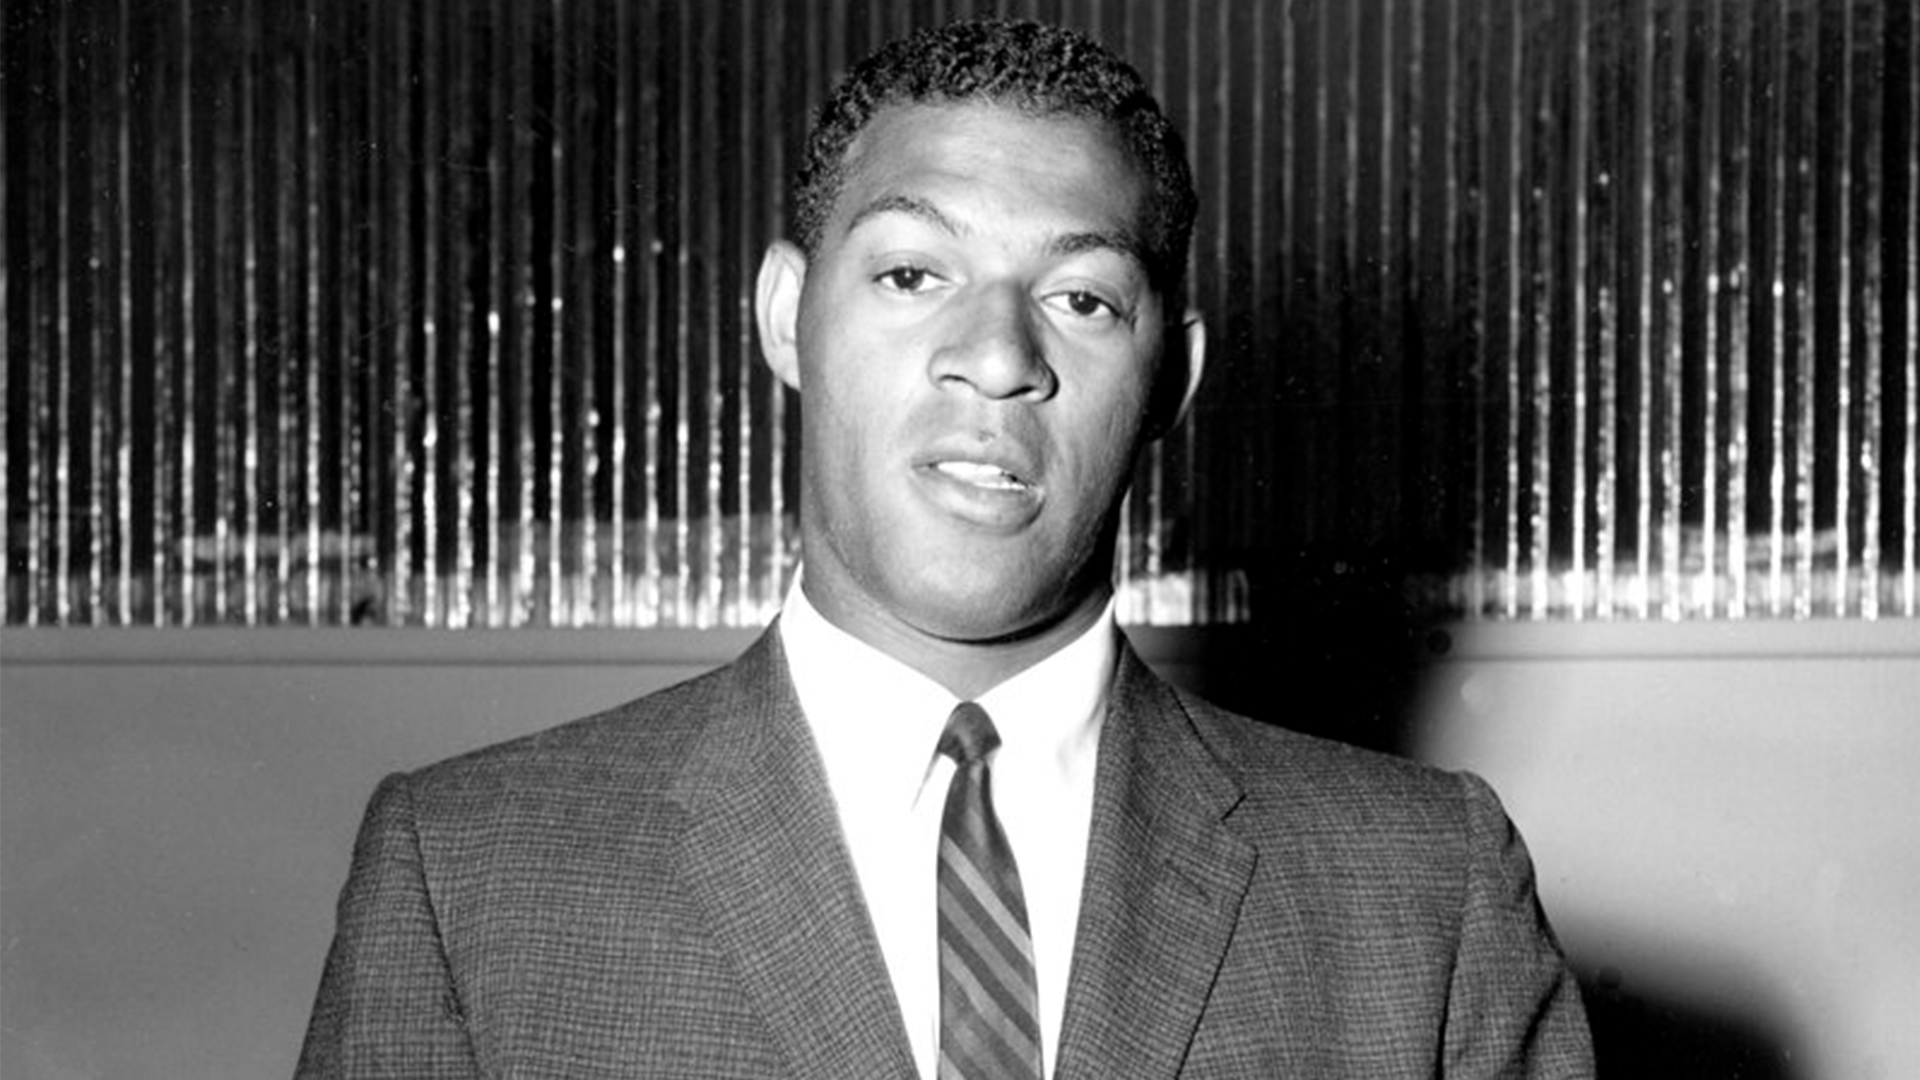 Elgin Baylor is shown during an NBA signing event in Minneapolis on June 14, 1958. (AP Photo)